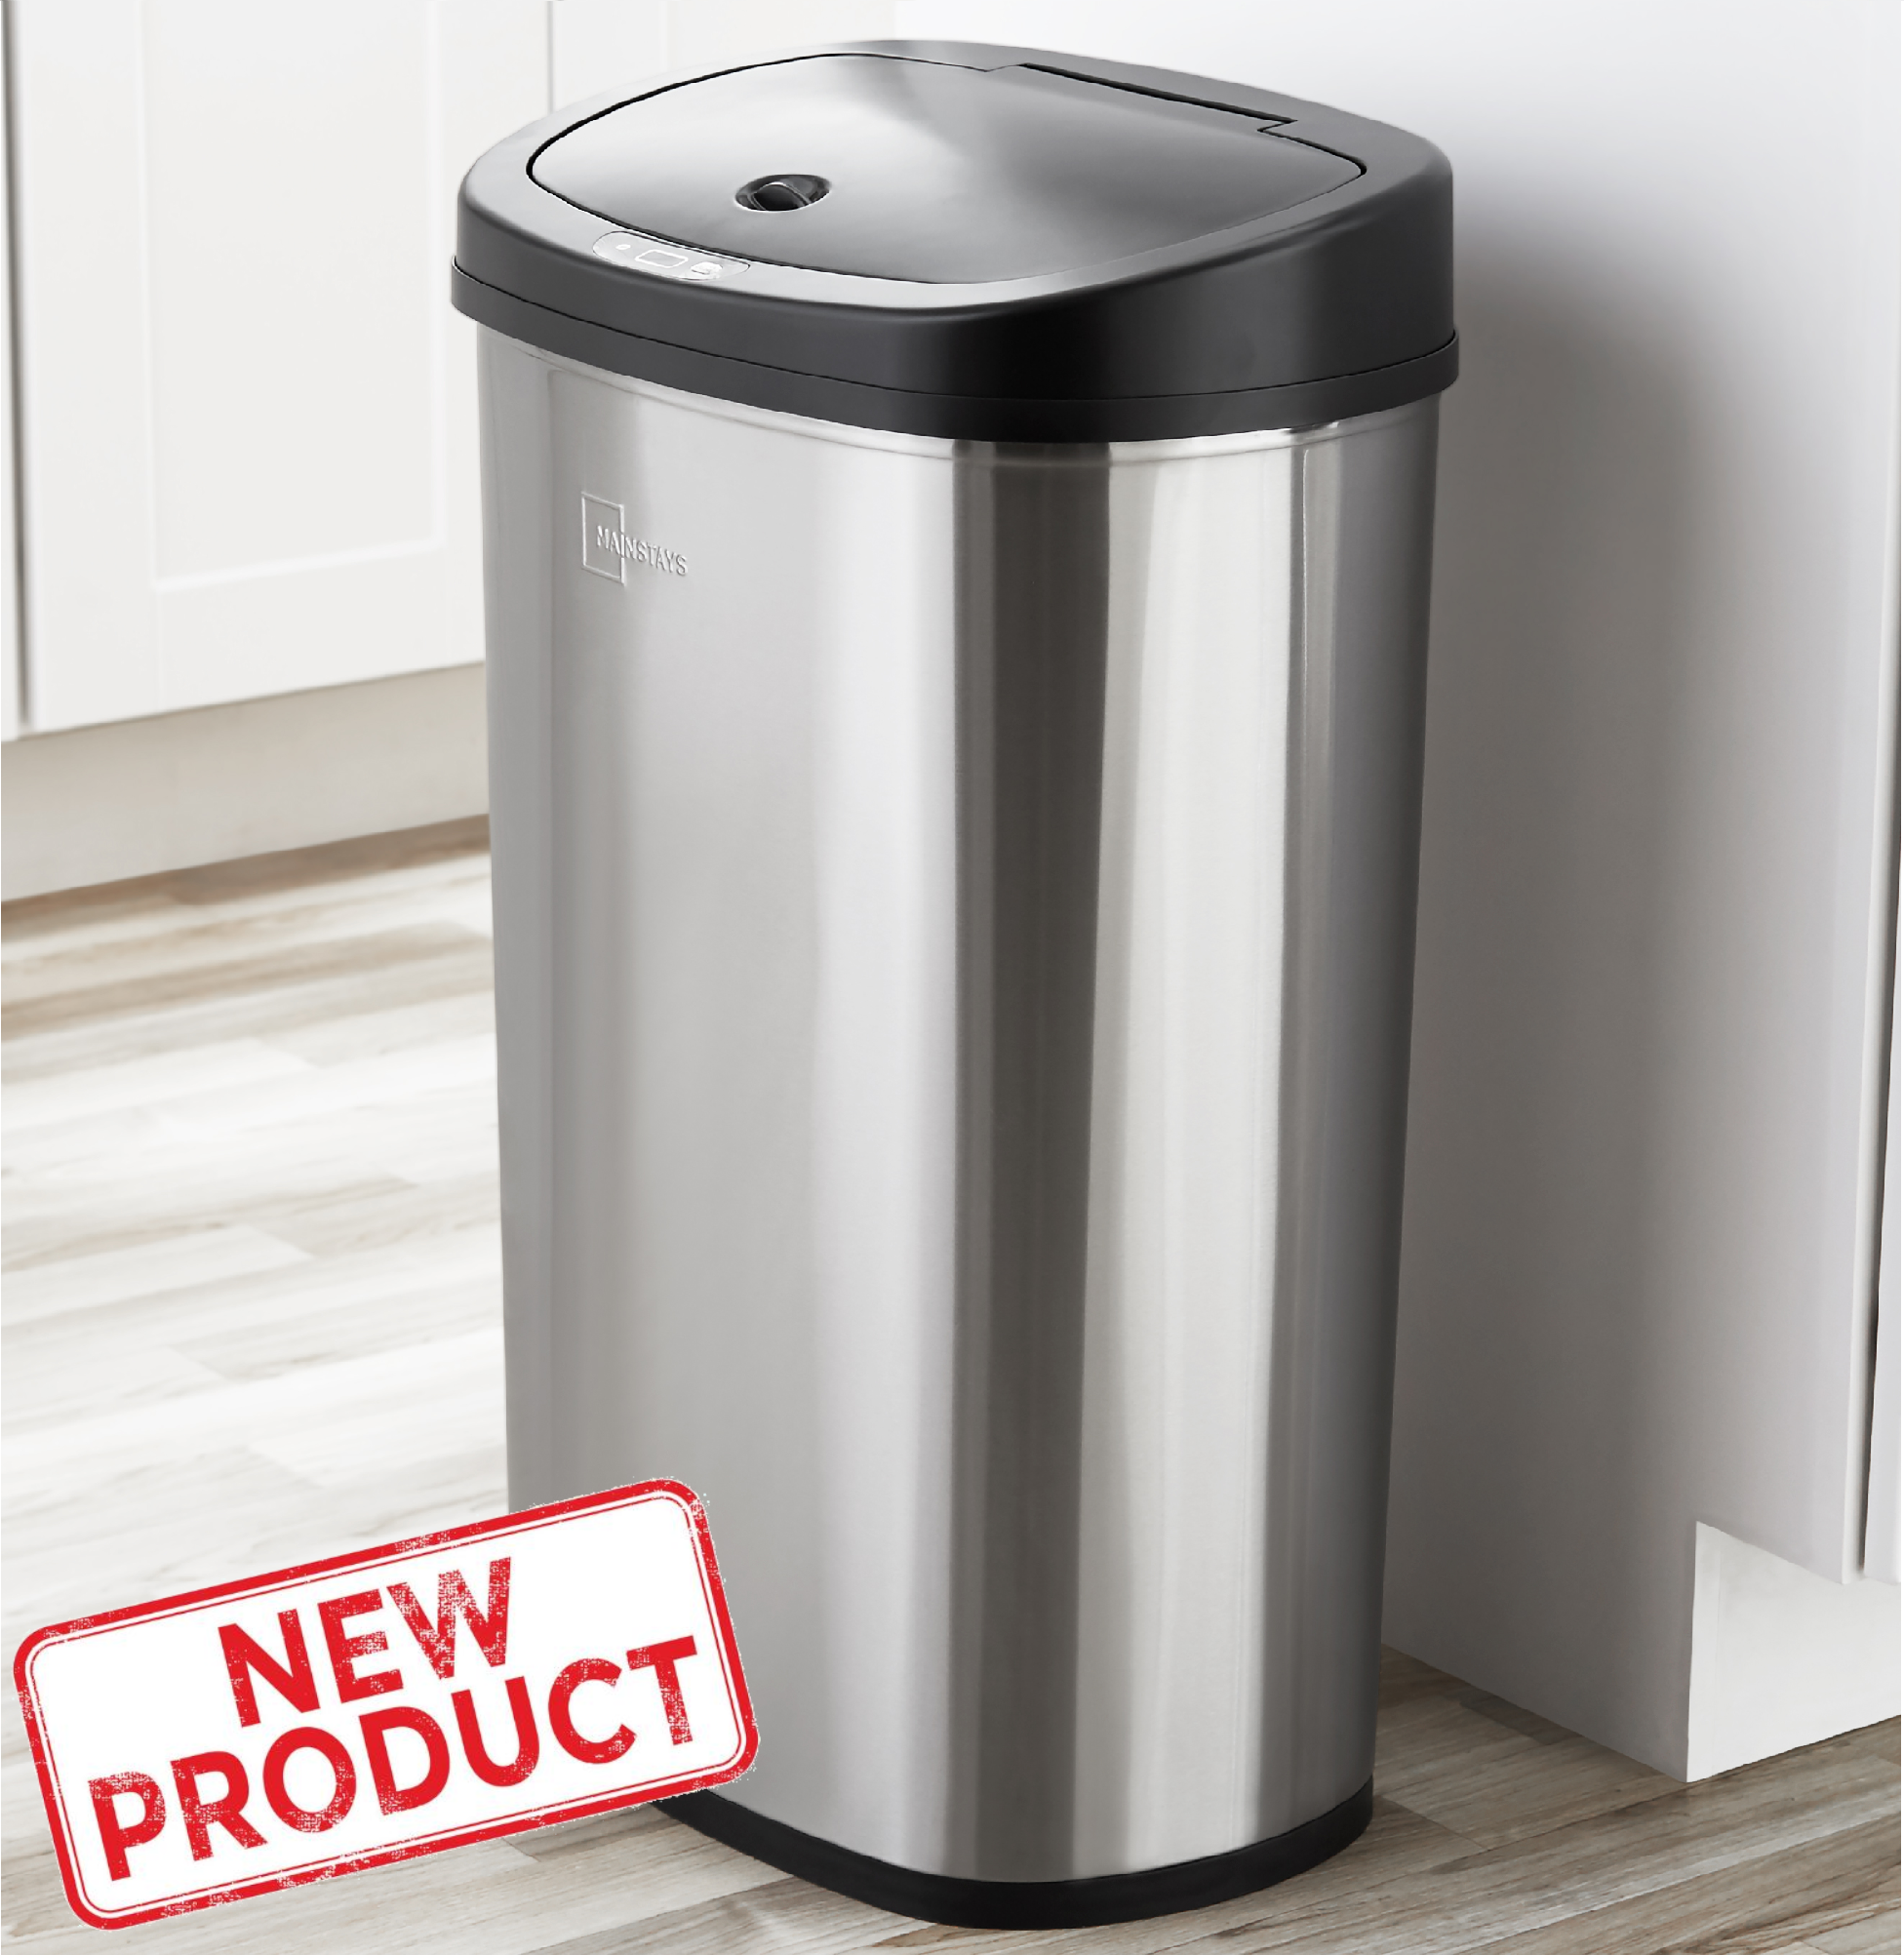 Details about 13 Gal Trash Can Motion Sensor Stainless Steel Kitchen  Garbage Hands Free Lid